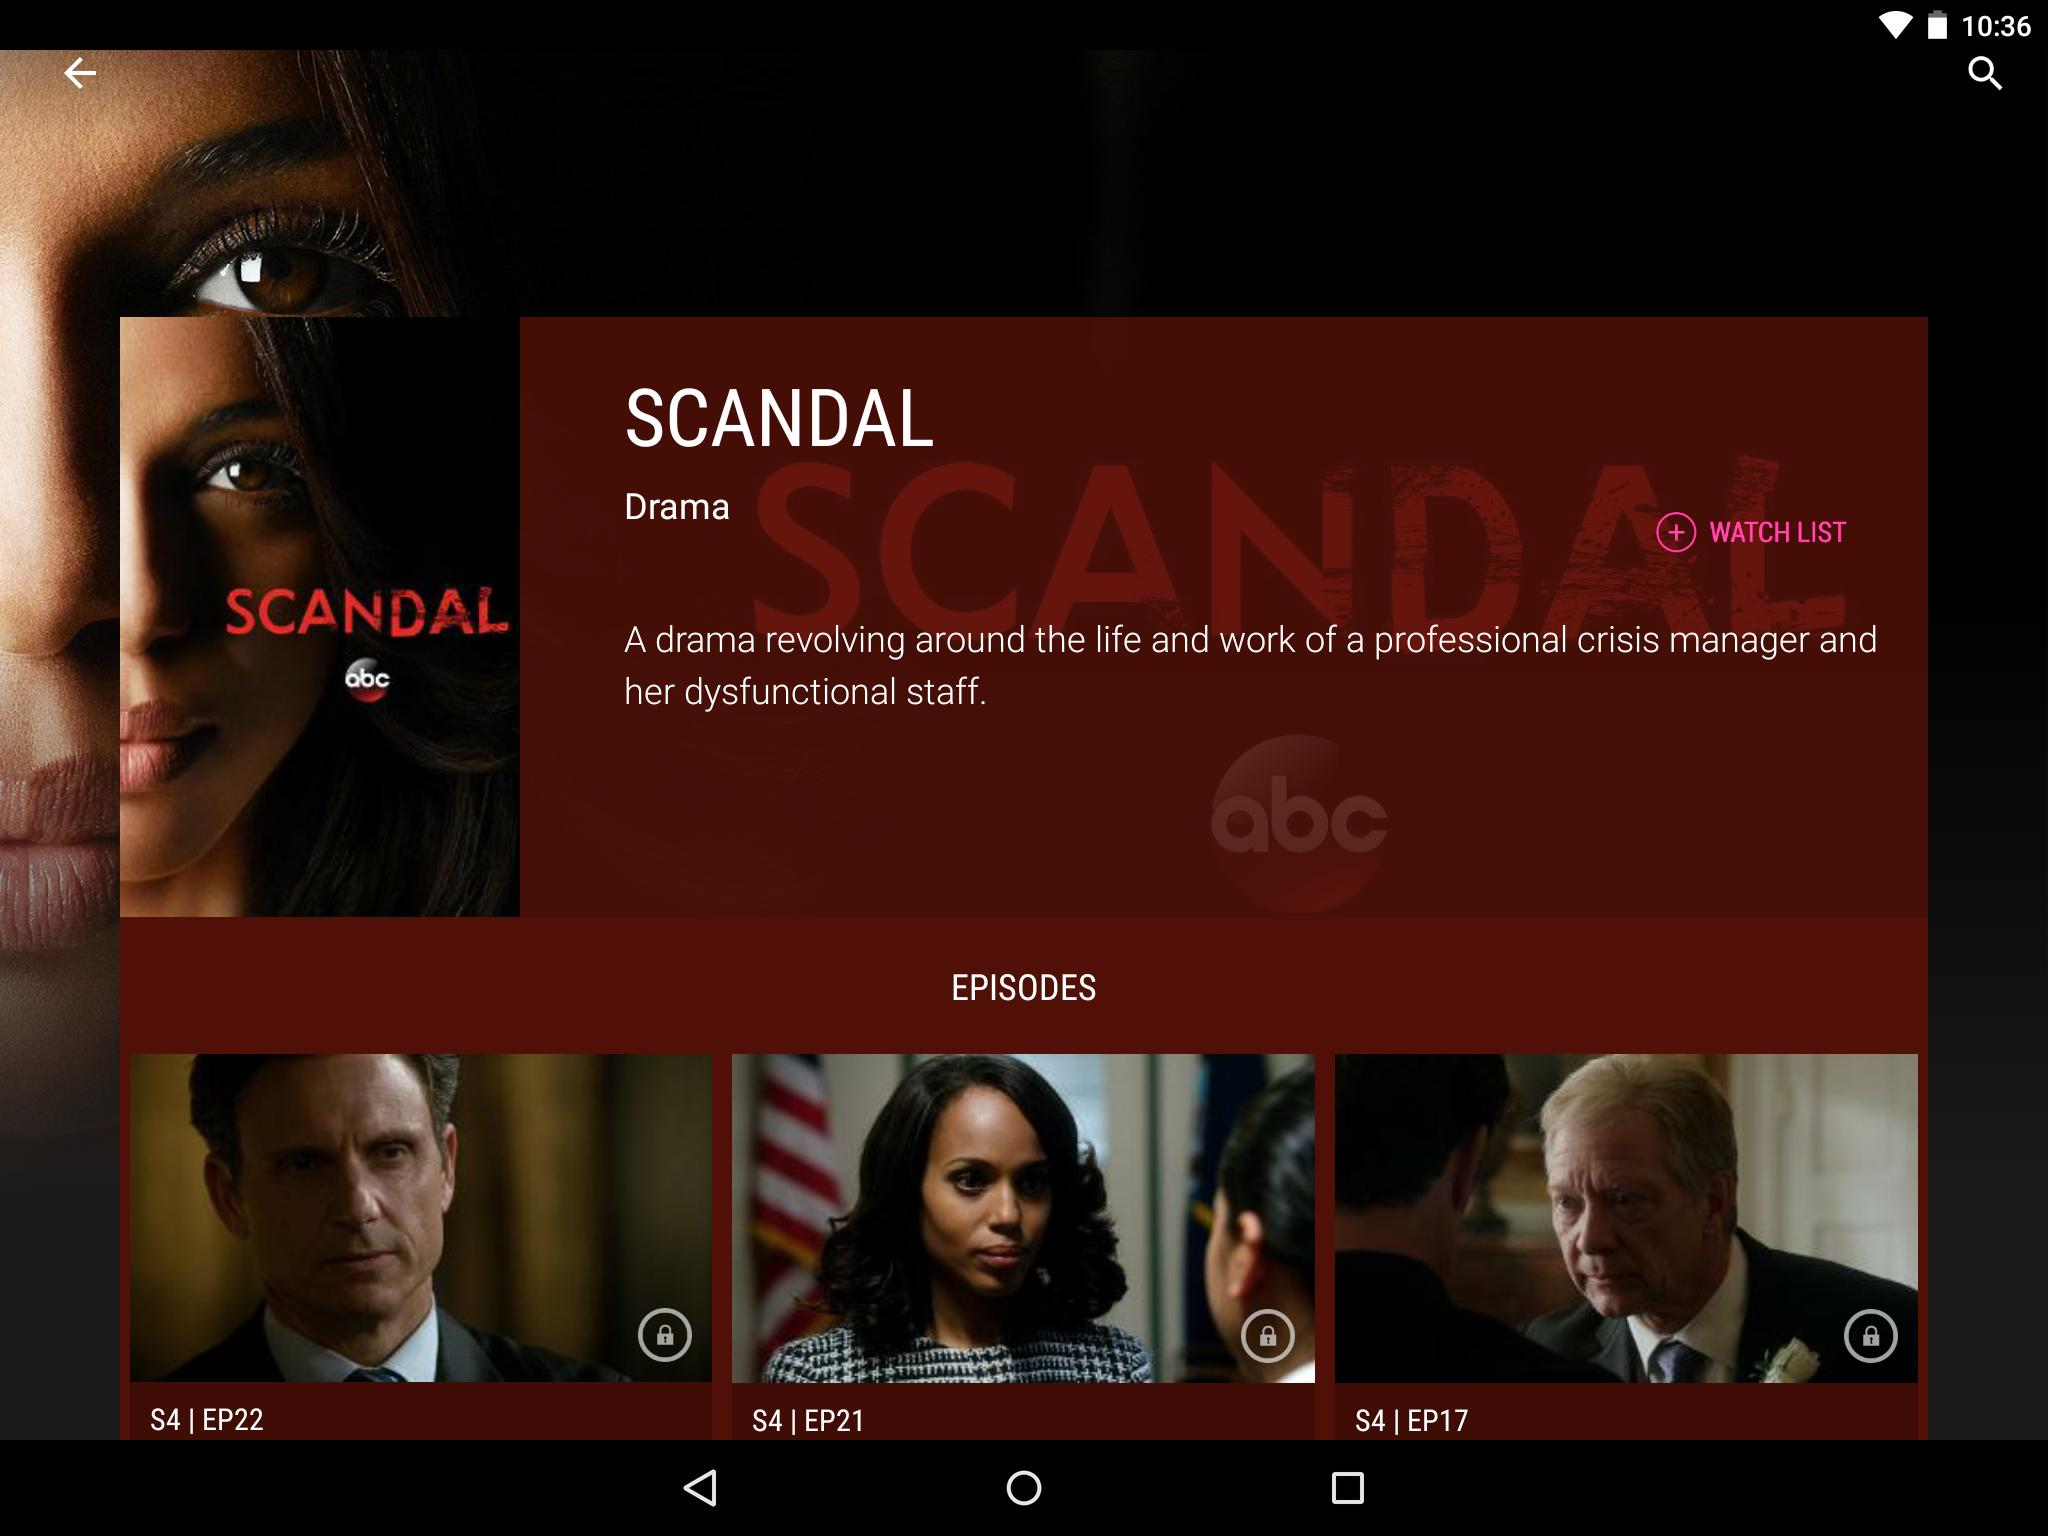 T-Mobile TV with Mobile HD for Android - APK Download